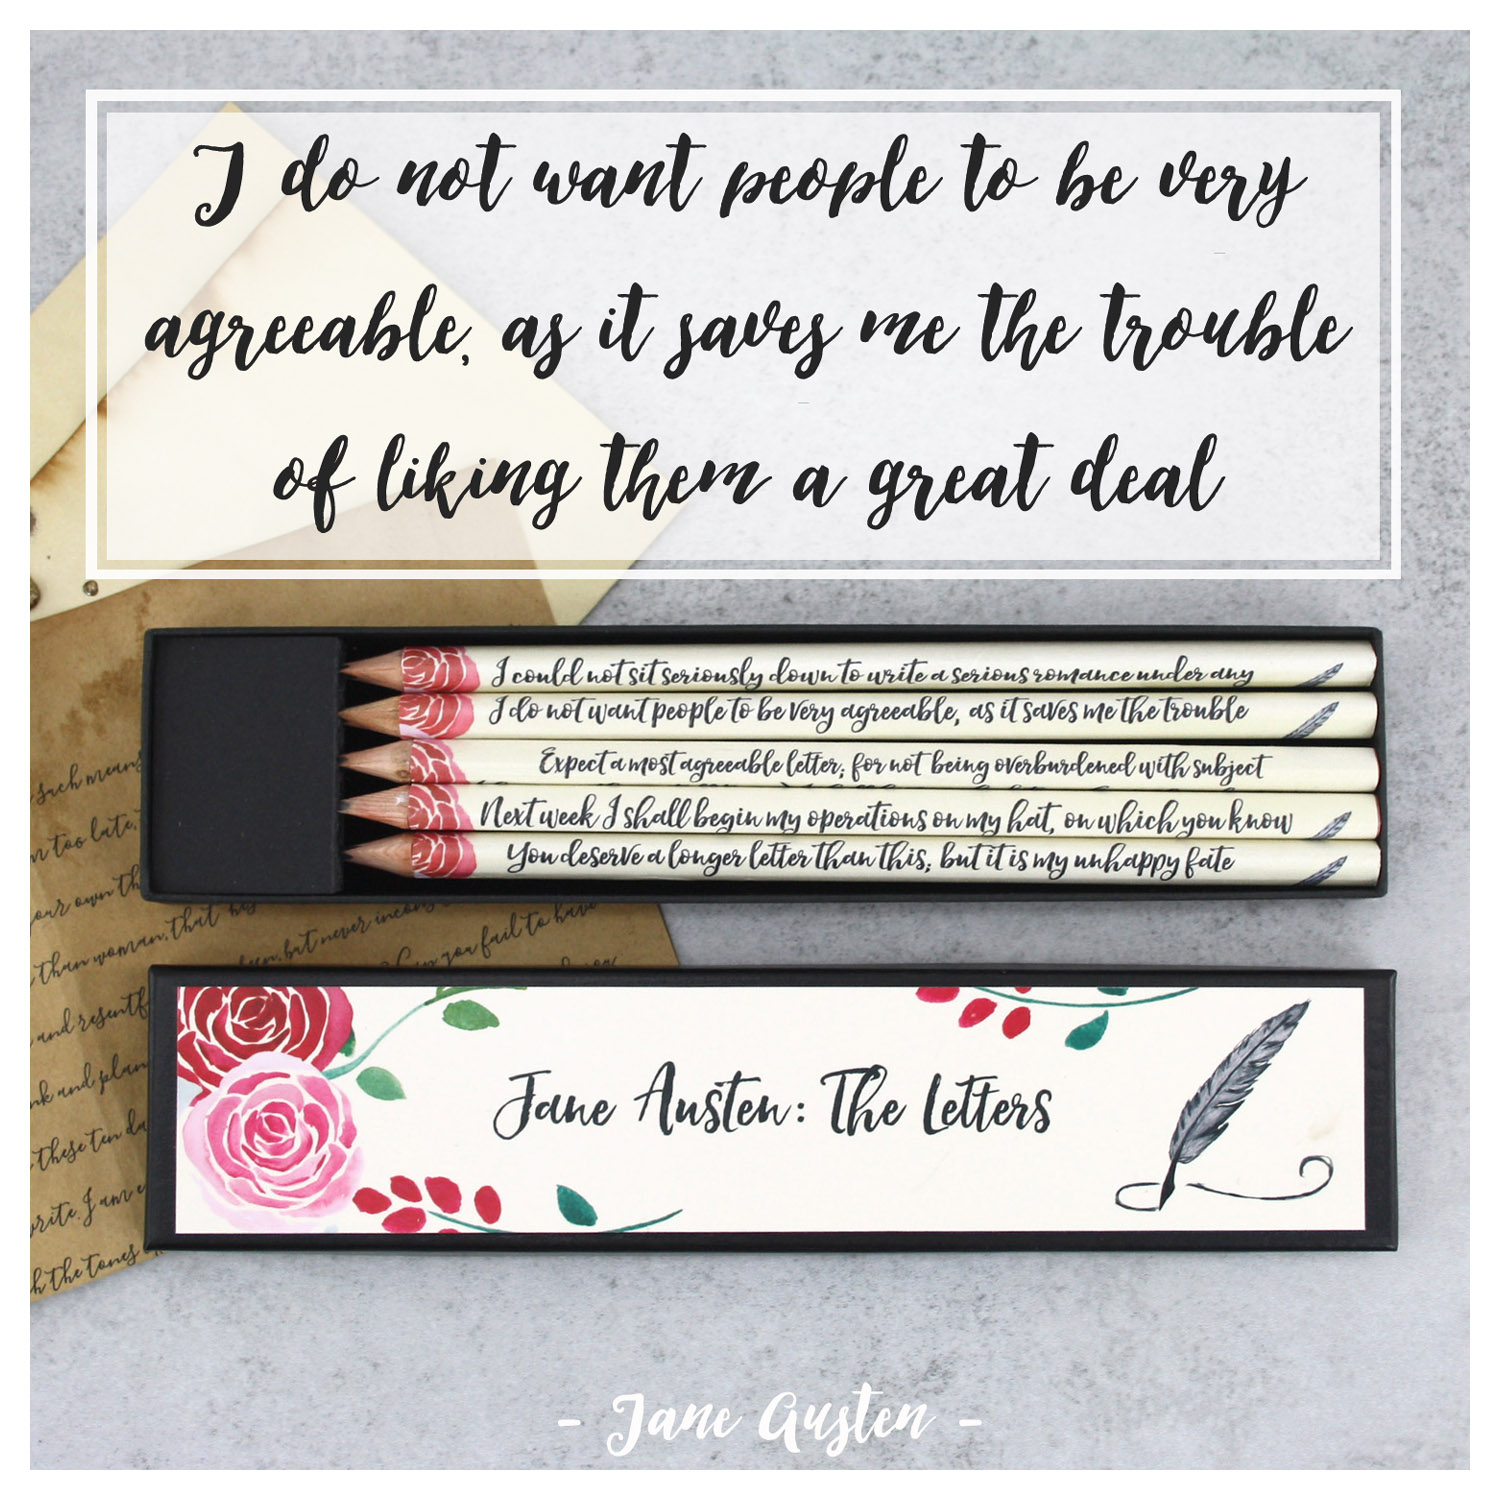 I do not want people to be very agreeable, as it saves me the trouble of liking them a great deal - Jane Austen letter to Cassandra